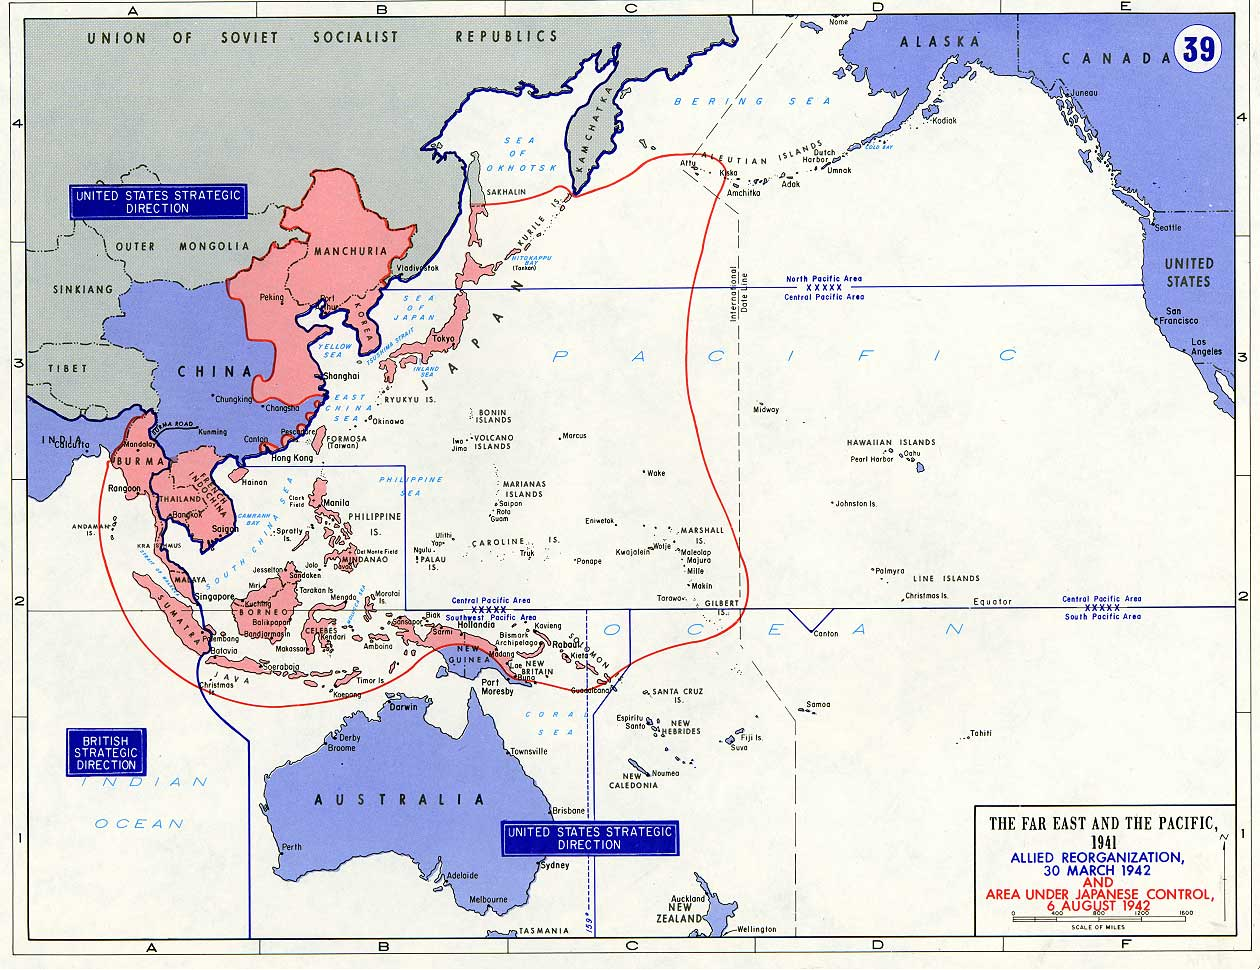 General Maps About The Far East And The Pacific During The WW II - Japan map during ww2